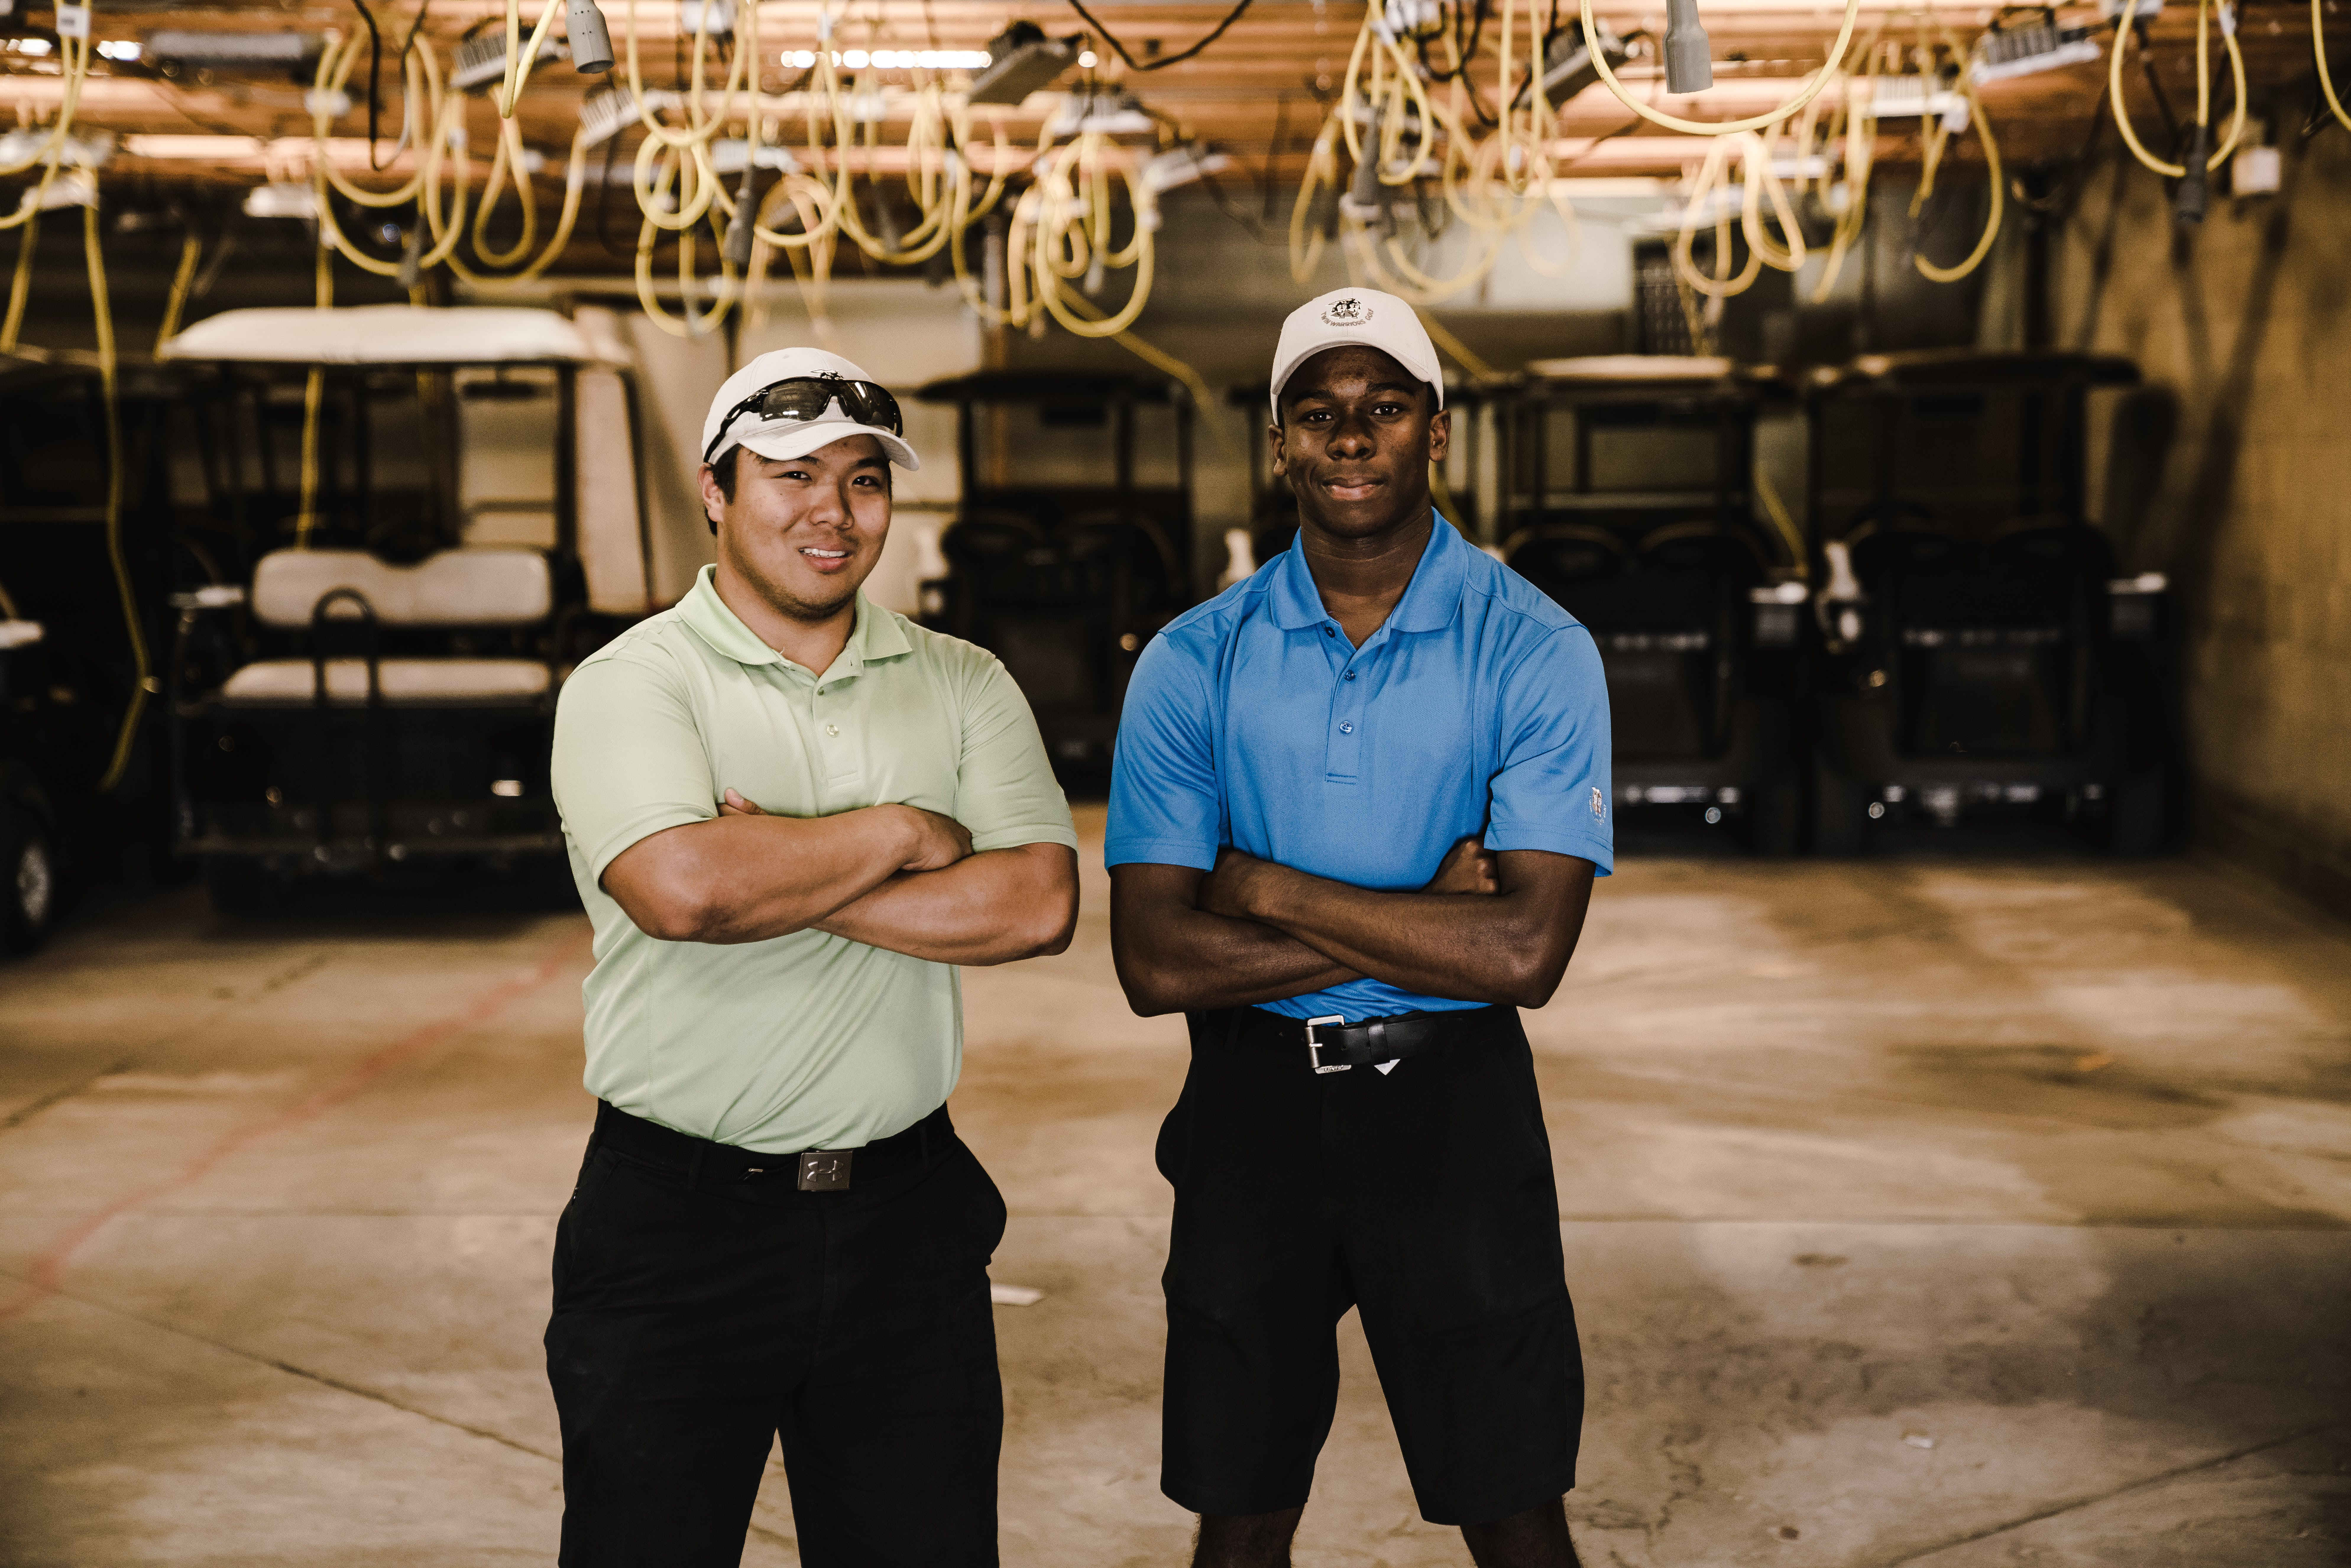 Two Men Crossing Arms While Standing Near Golf Carts